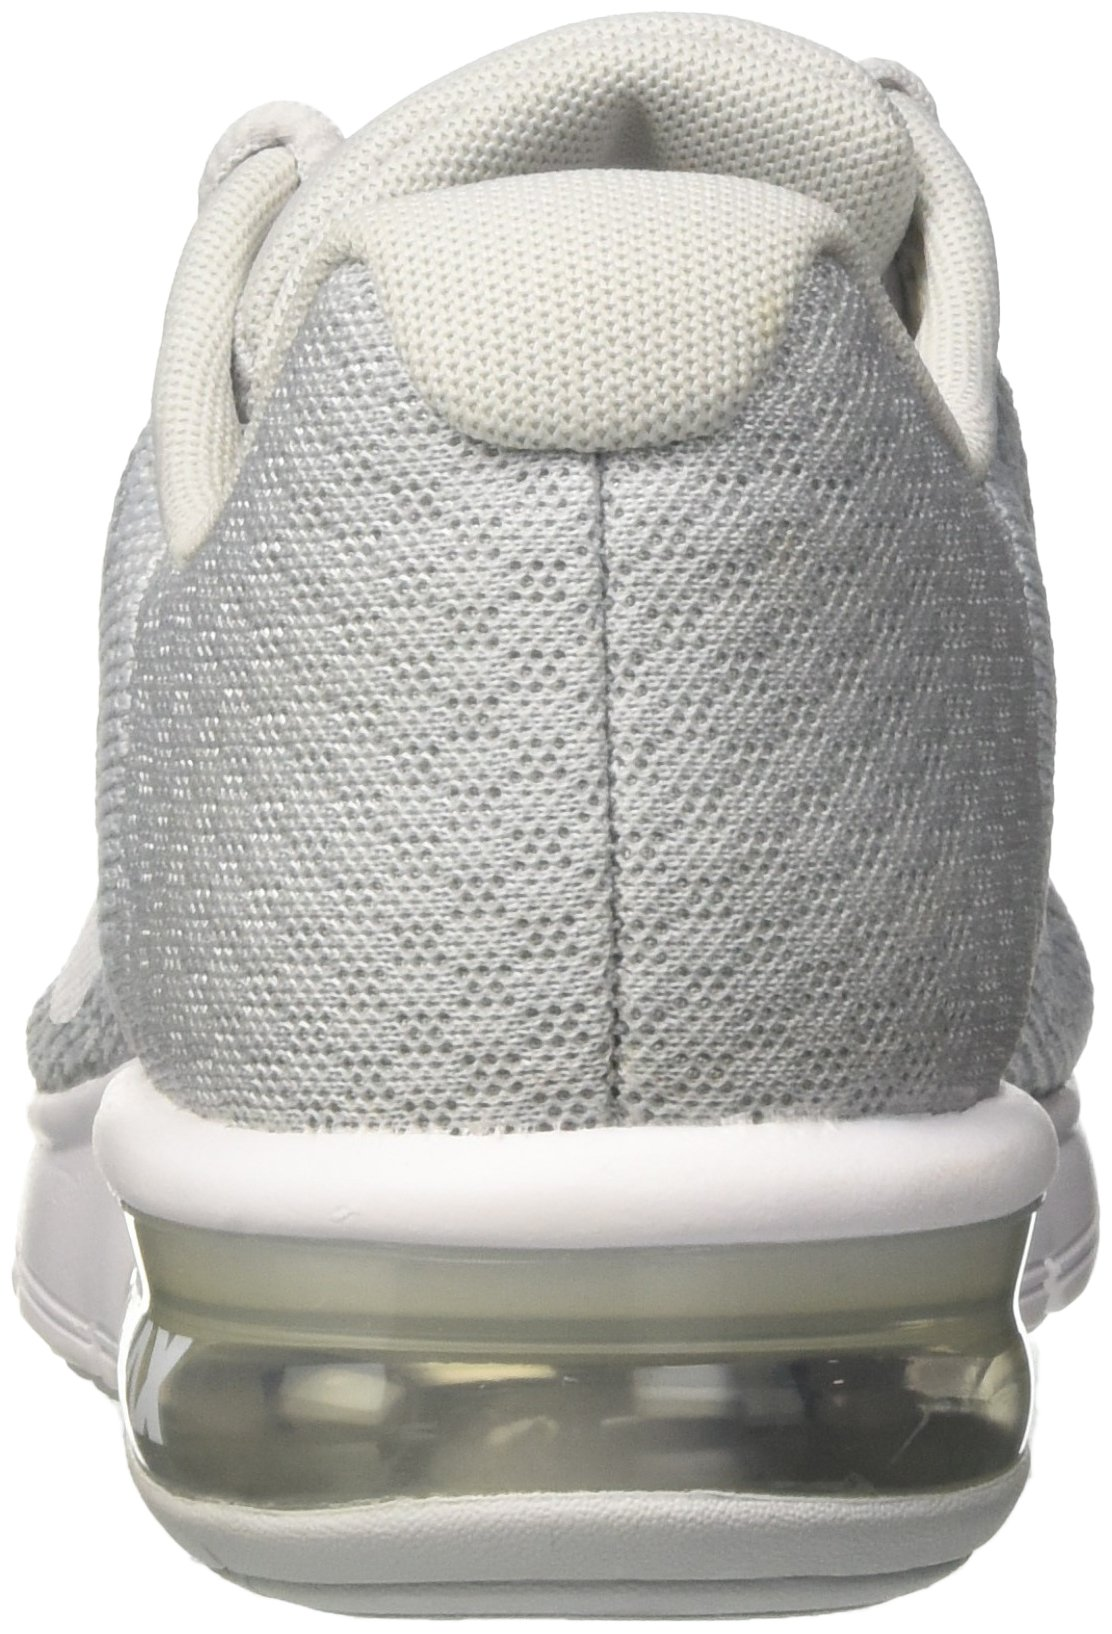 NIKE Womens Air max Sequent 2 Low Top Lace Up Running Sneaker, Silver, Size 10.0 by NIKE (Image #2)